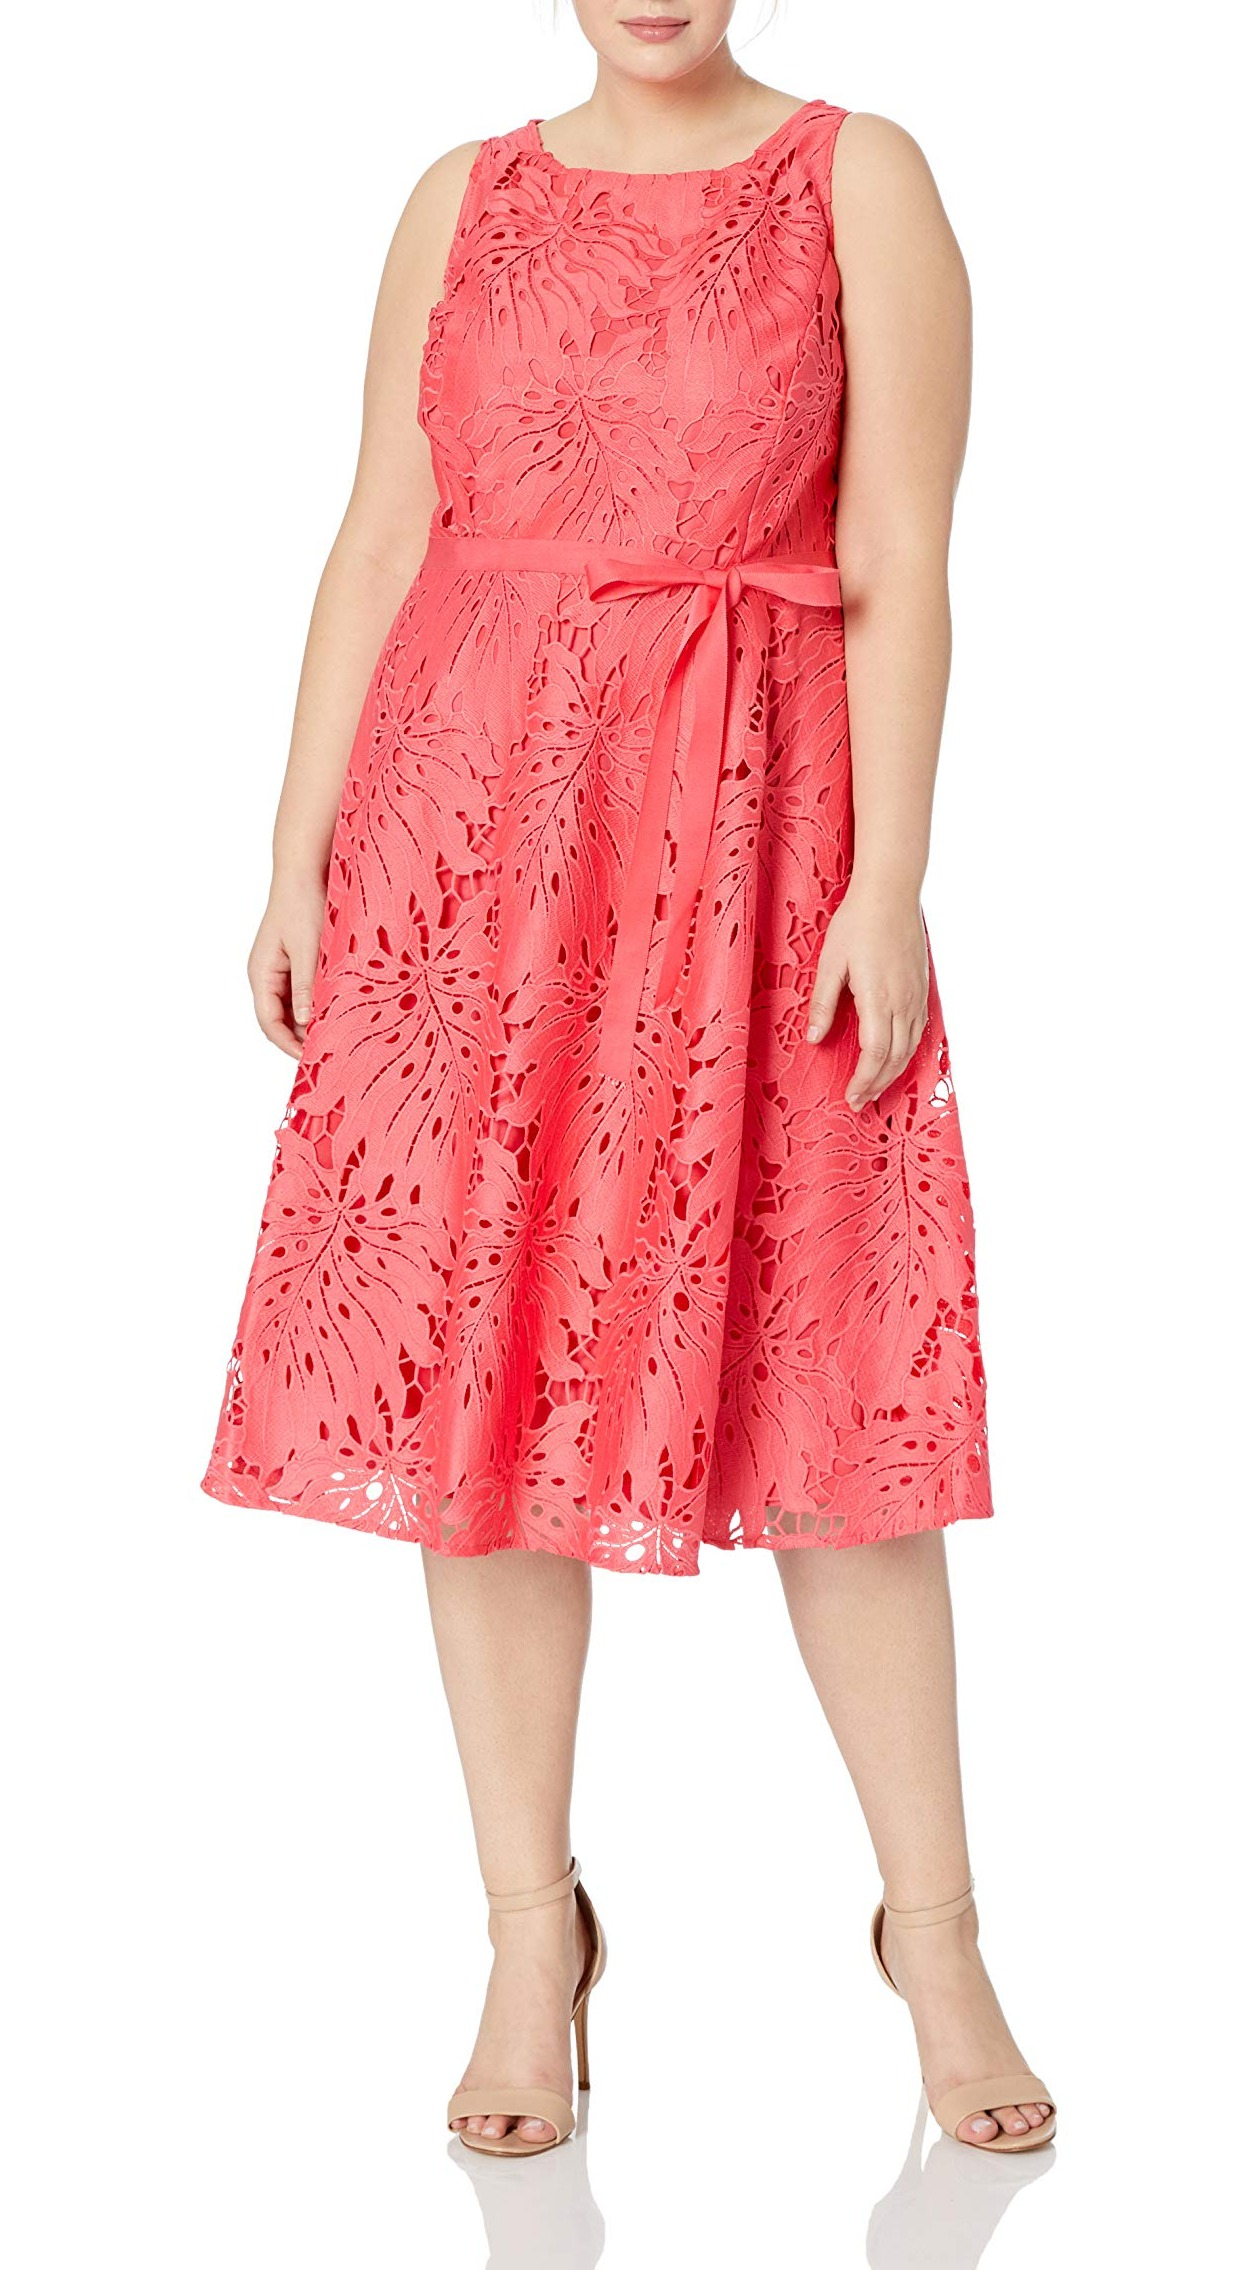 Tahari by ASL NEW Pink Women's USA 16 Floral Lace A-Line Sheath Dress